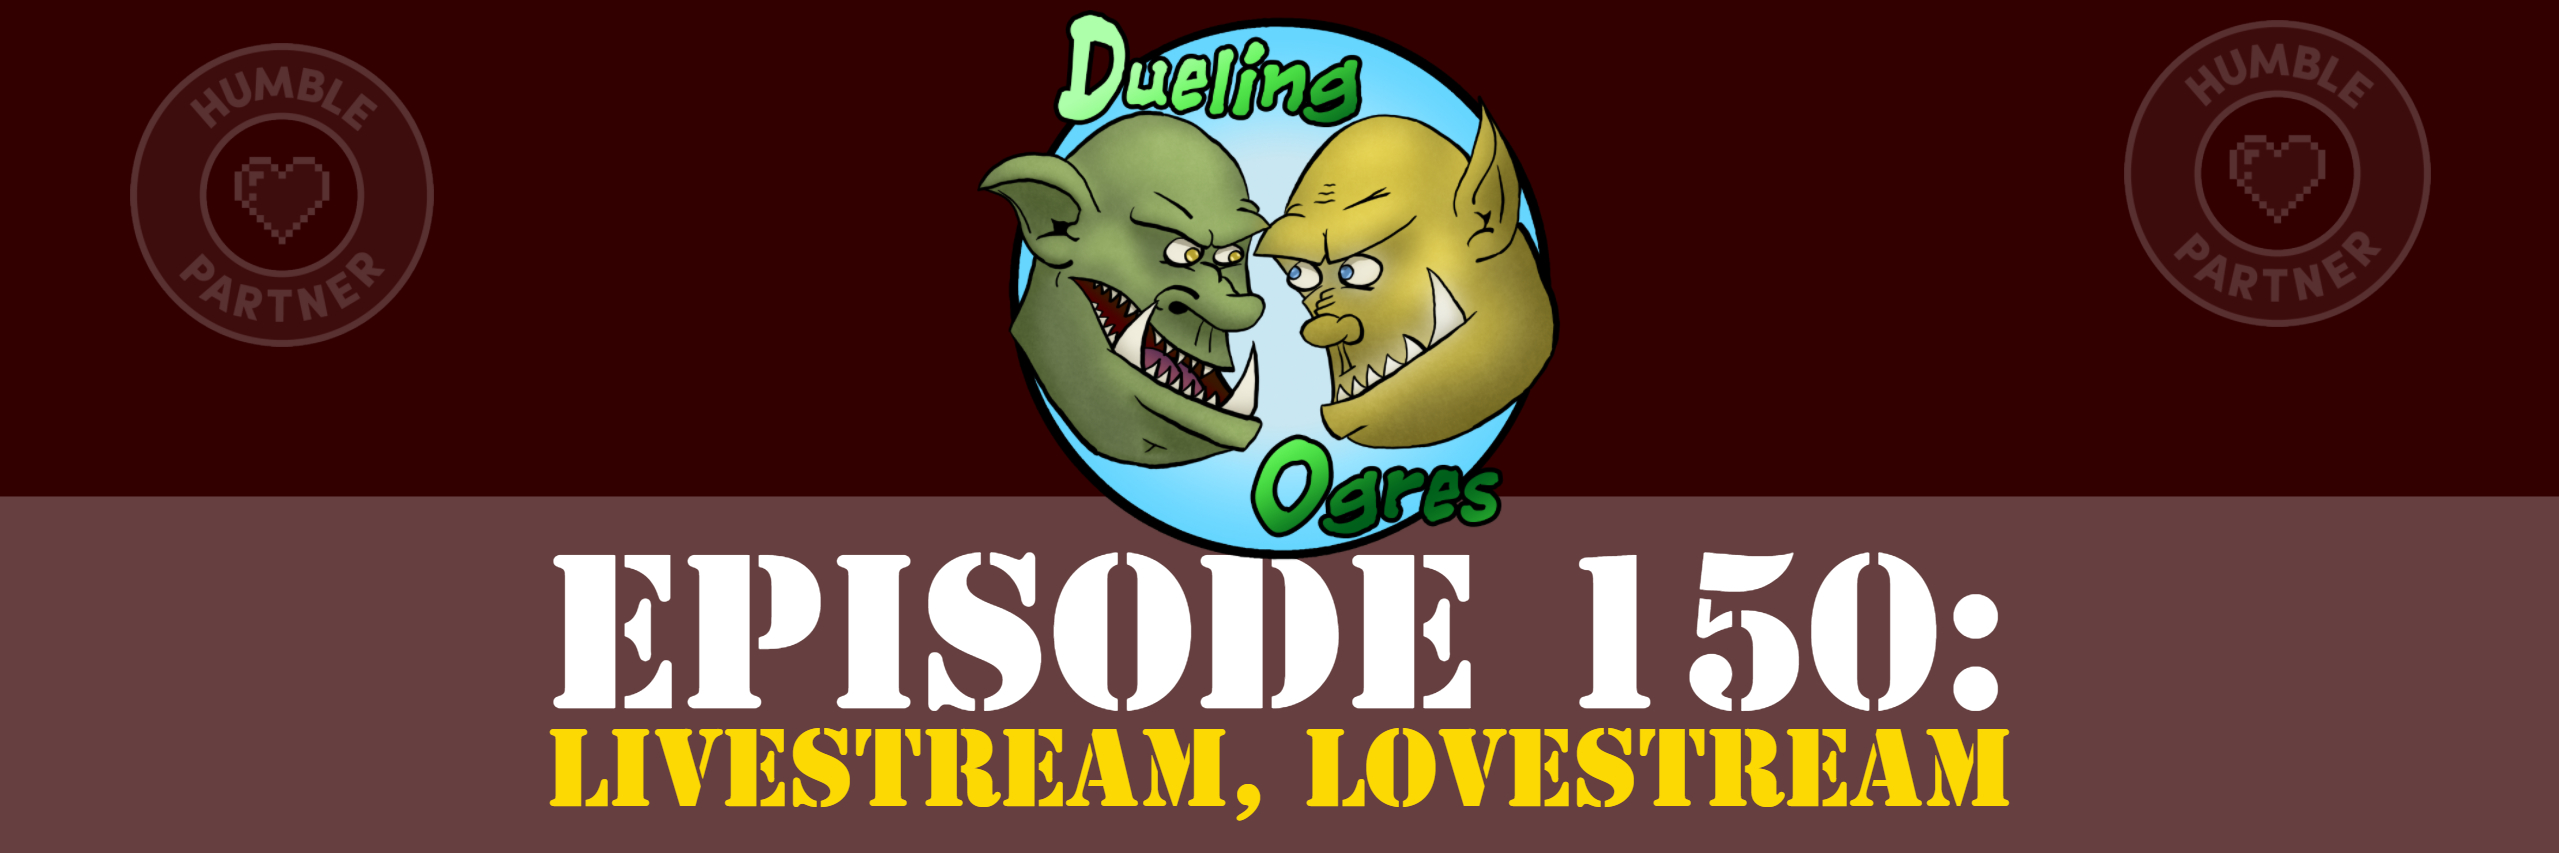 Episode 150: Livestream, Lovestream